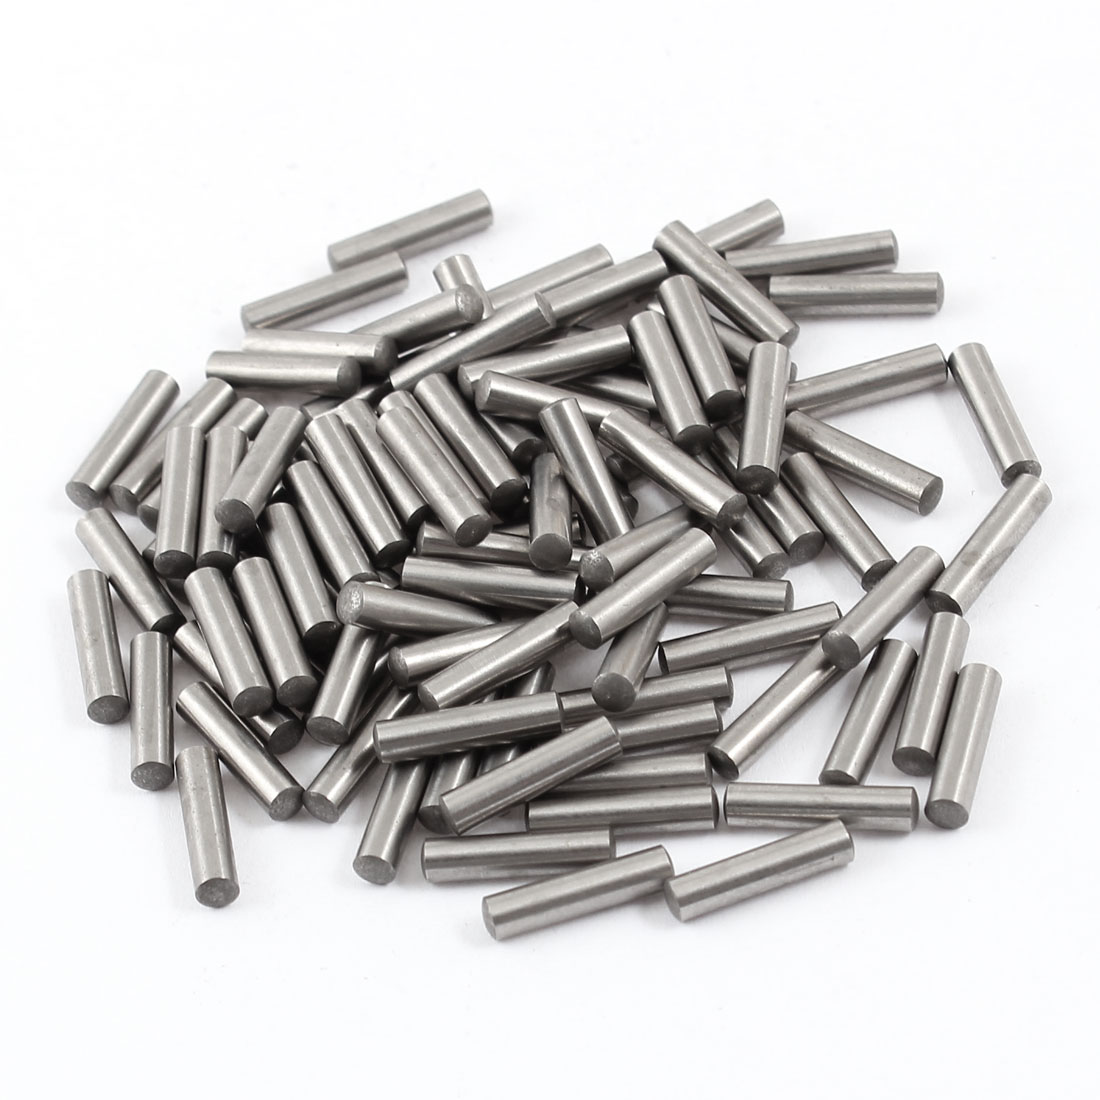 100 Pcs 3mm x 13mm Parallel Dowel Pins Fasten Elements Silver Tone